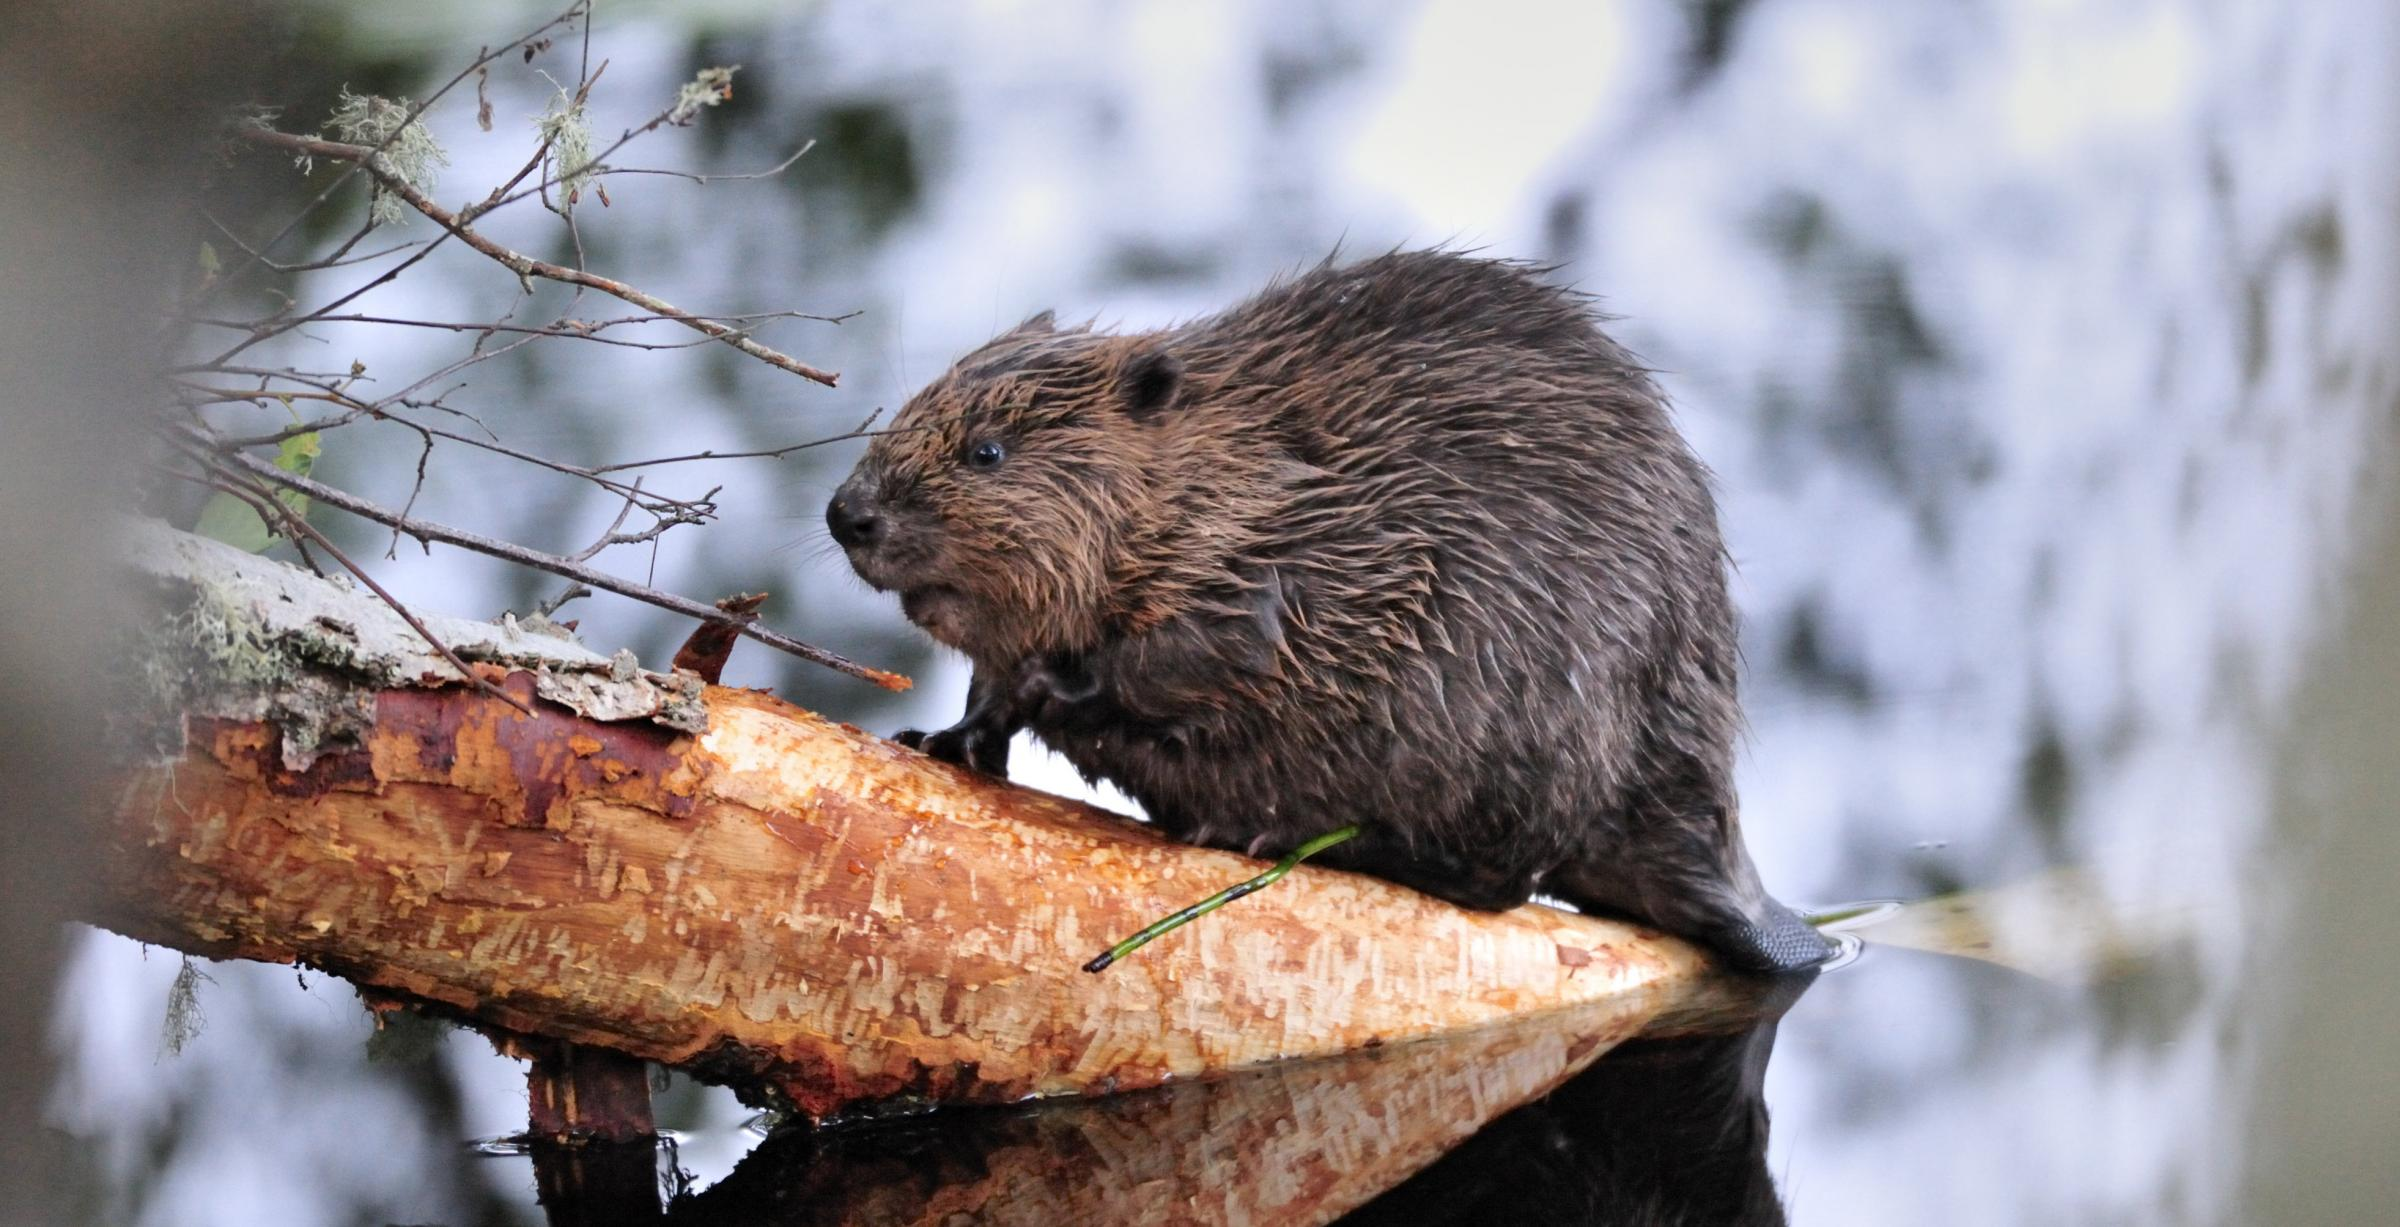 Farmers have voiced concerns over agricultural damage due to a rise in the beaver population